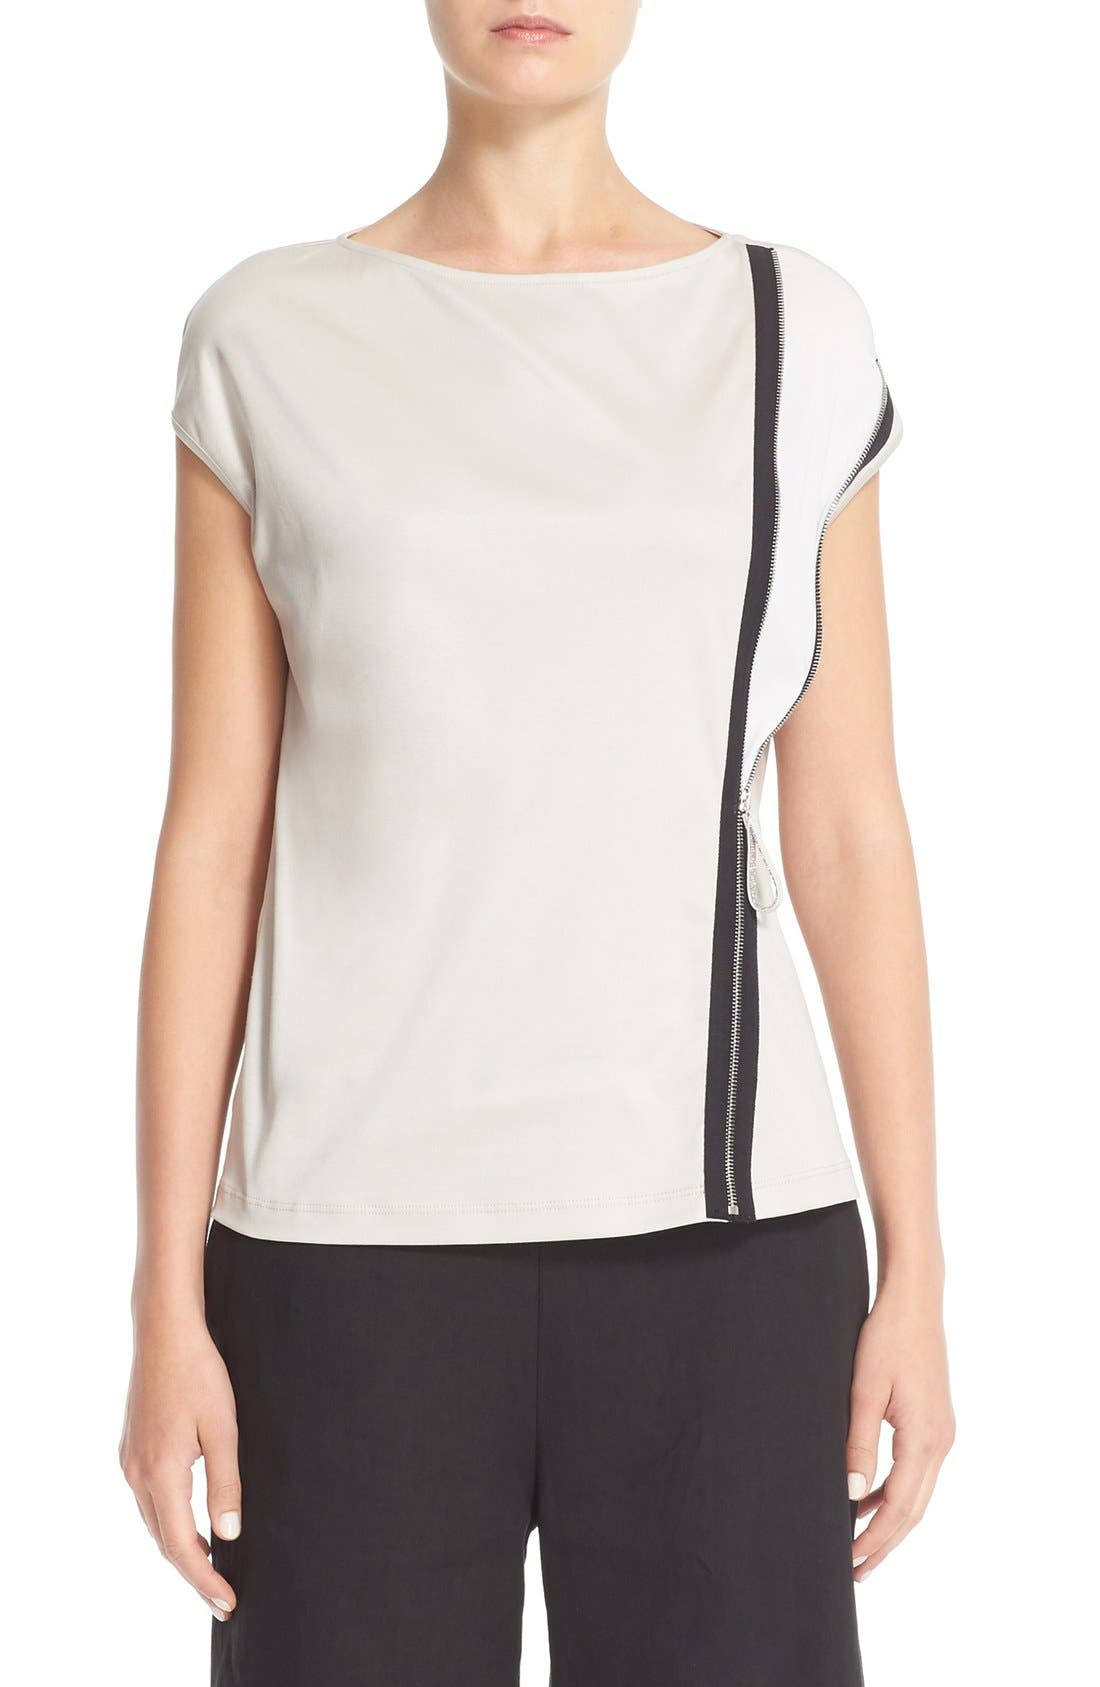 FABIANA FILIPPI Zipper Detail Jersey Top